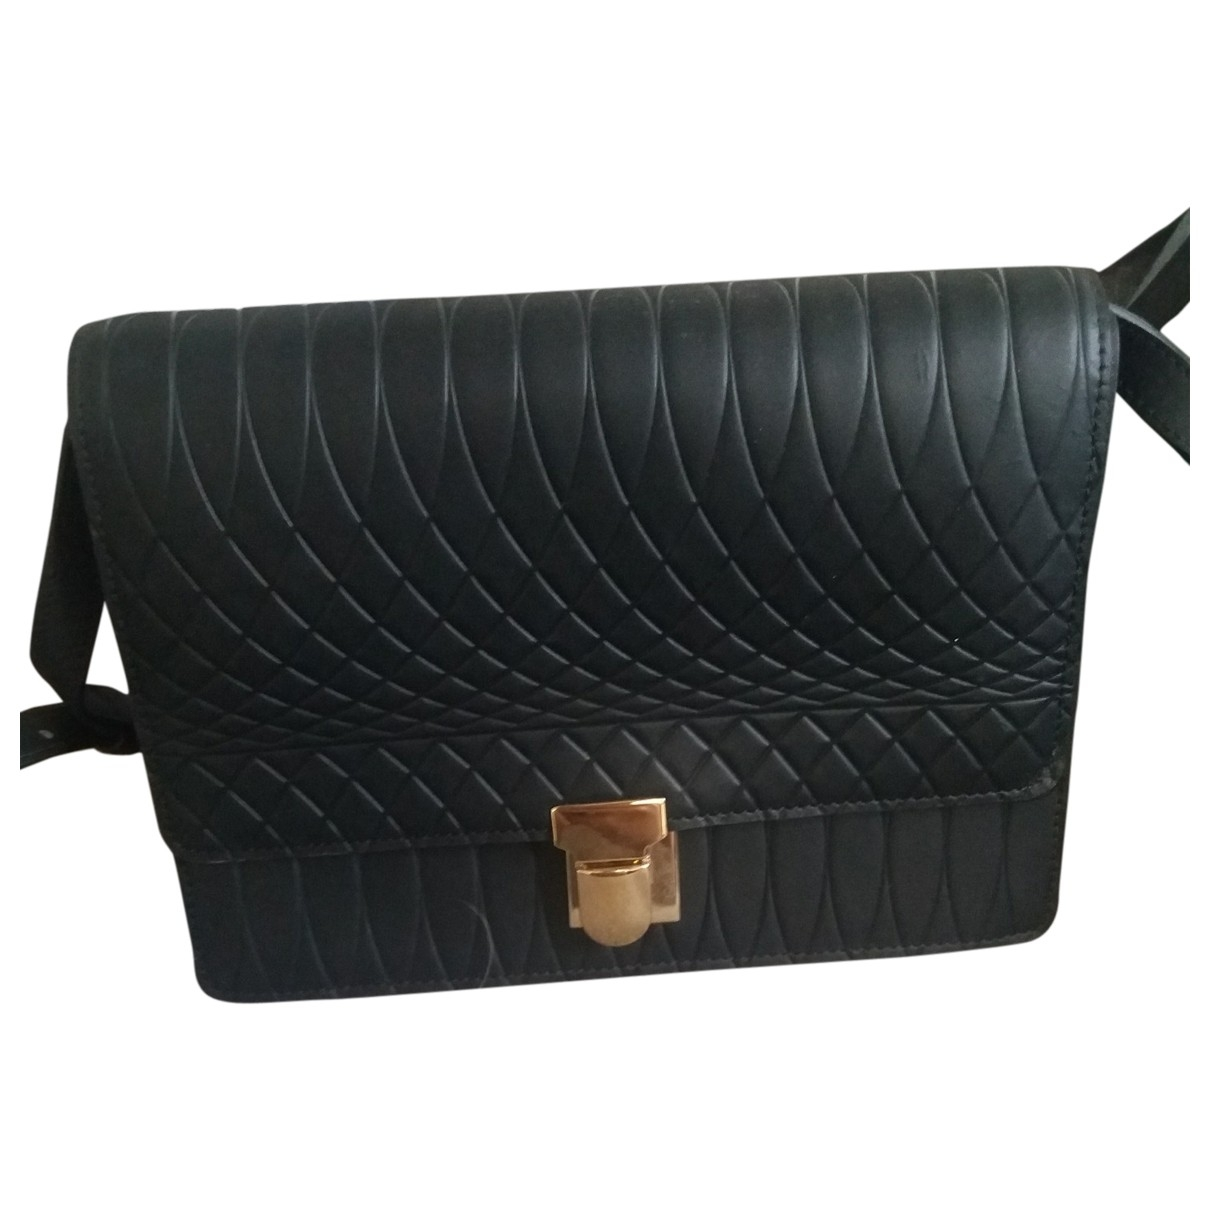 Paul Smith \N Black Leather handbag for Women \N